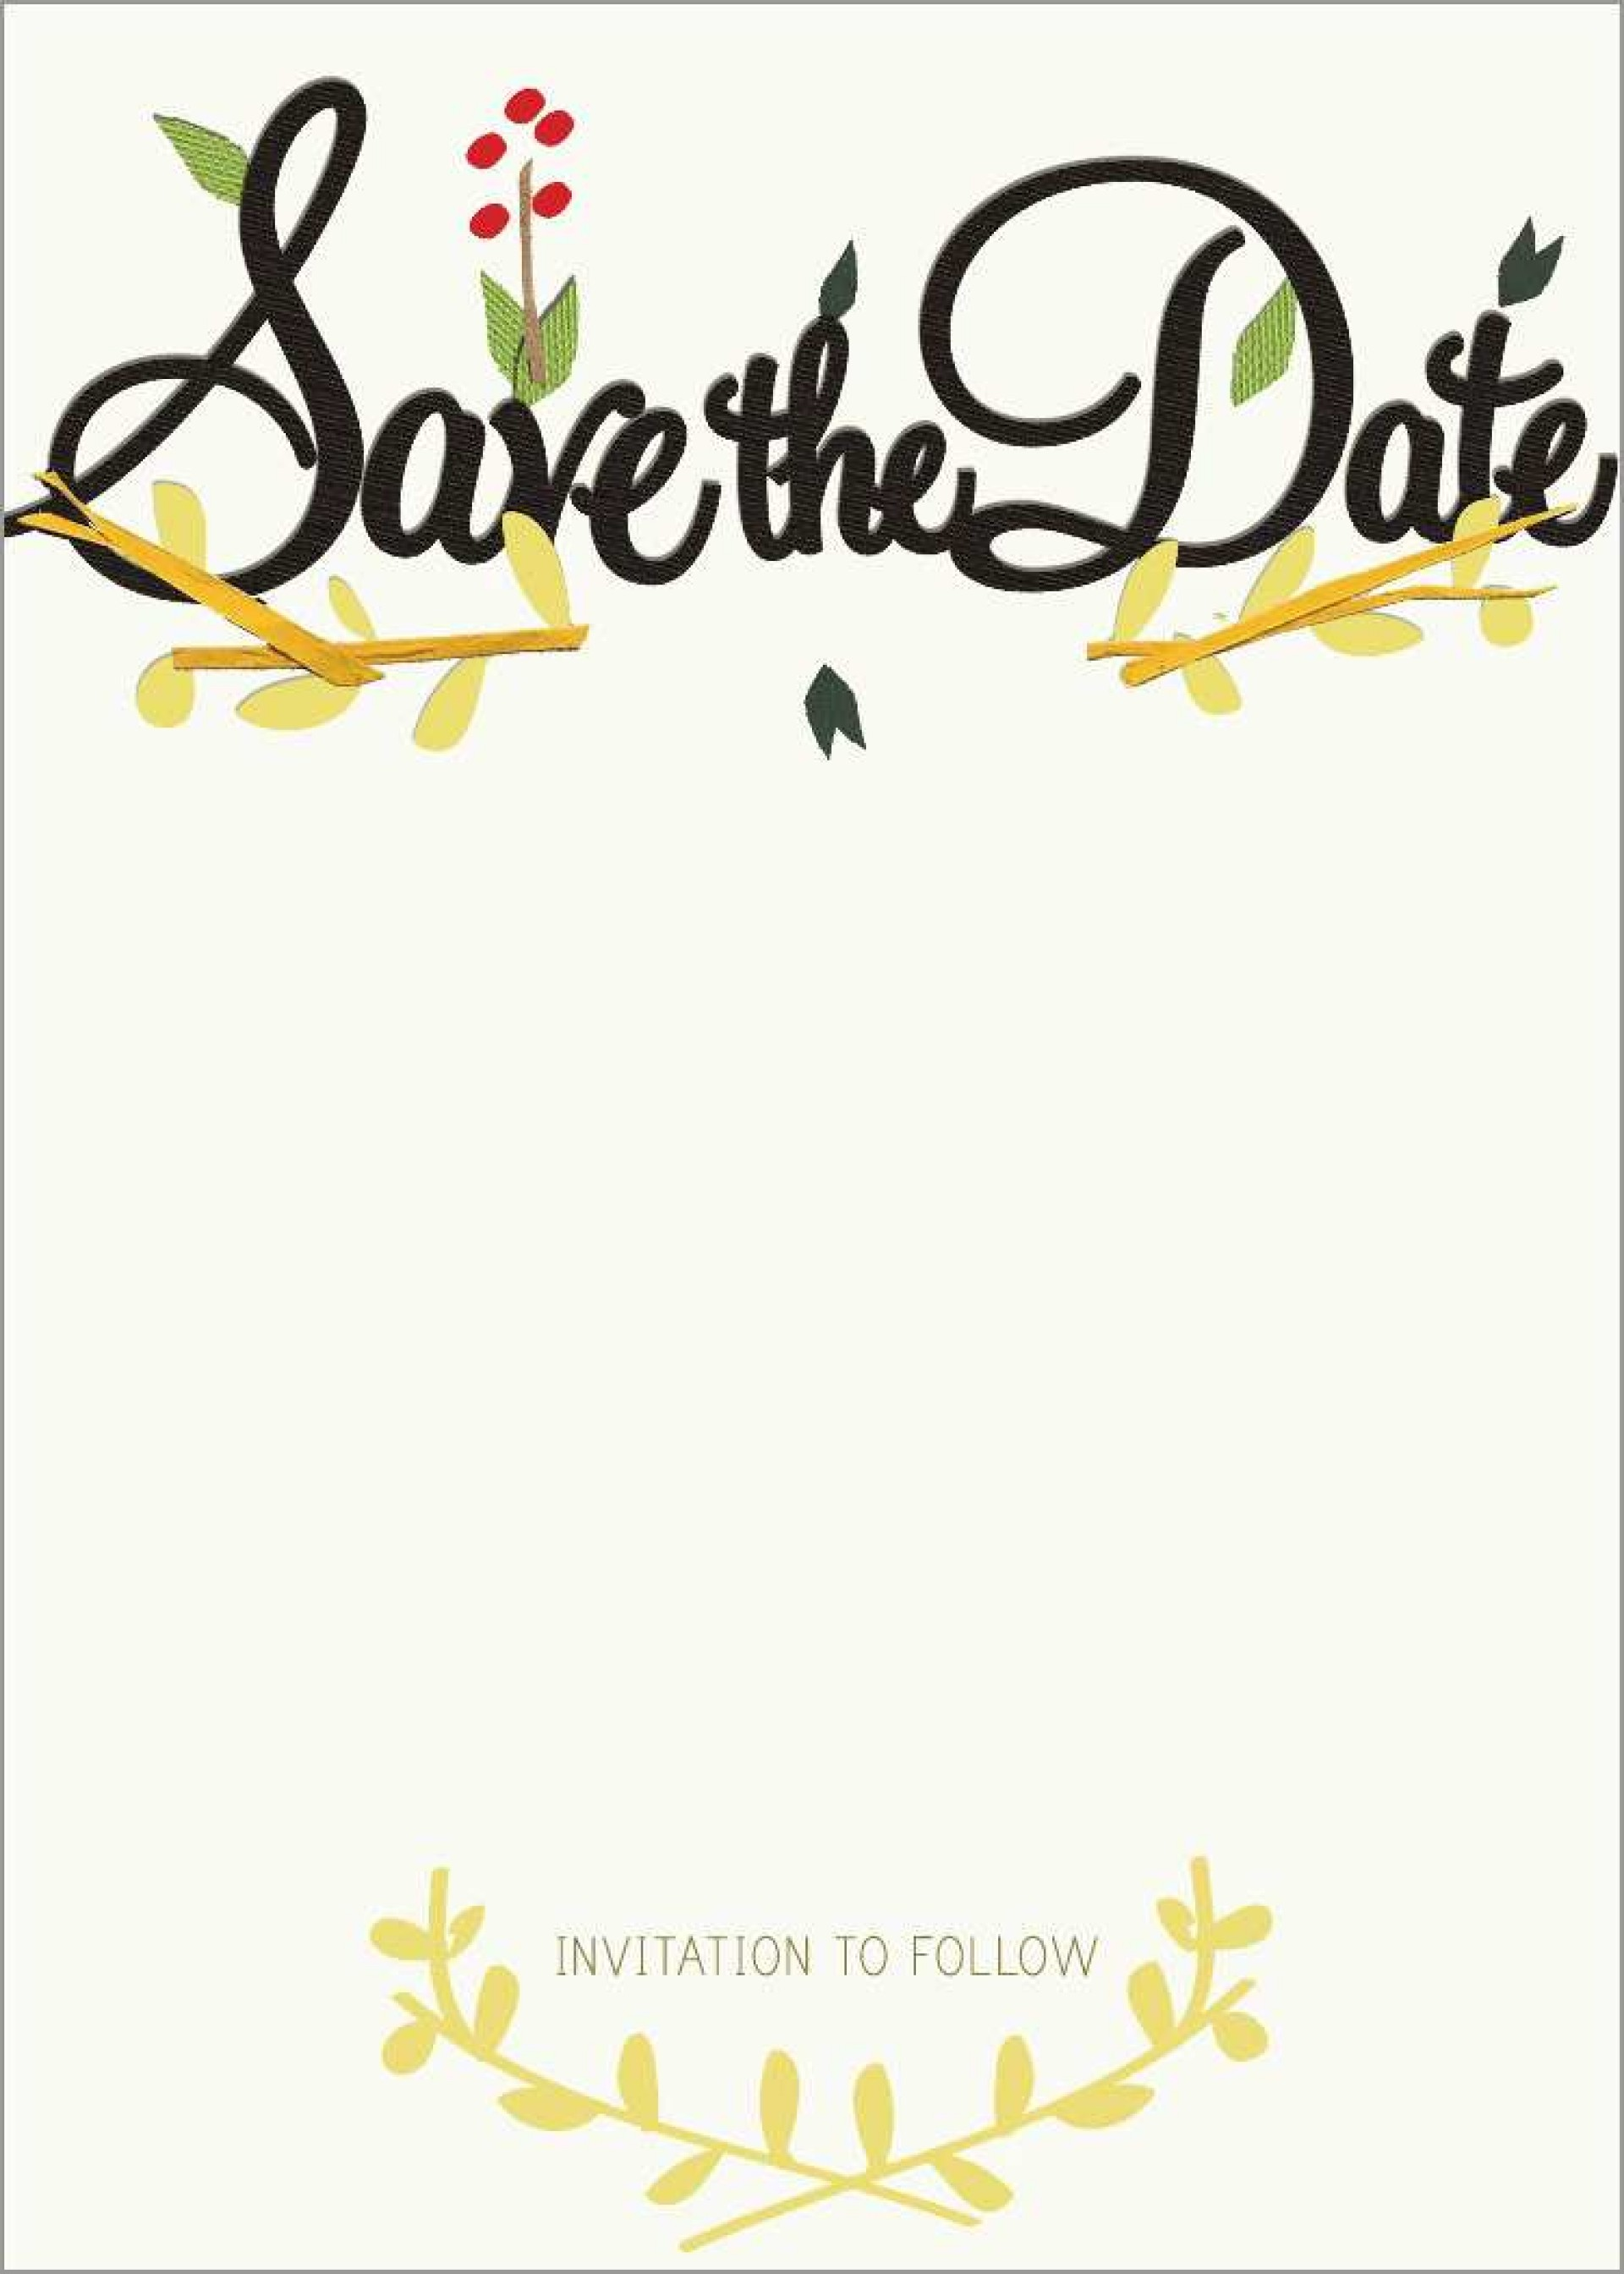 020 Template Ideas Wedding Save The Dates Combo Spring2019.